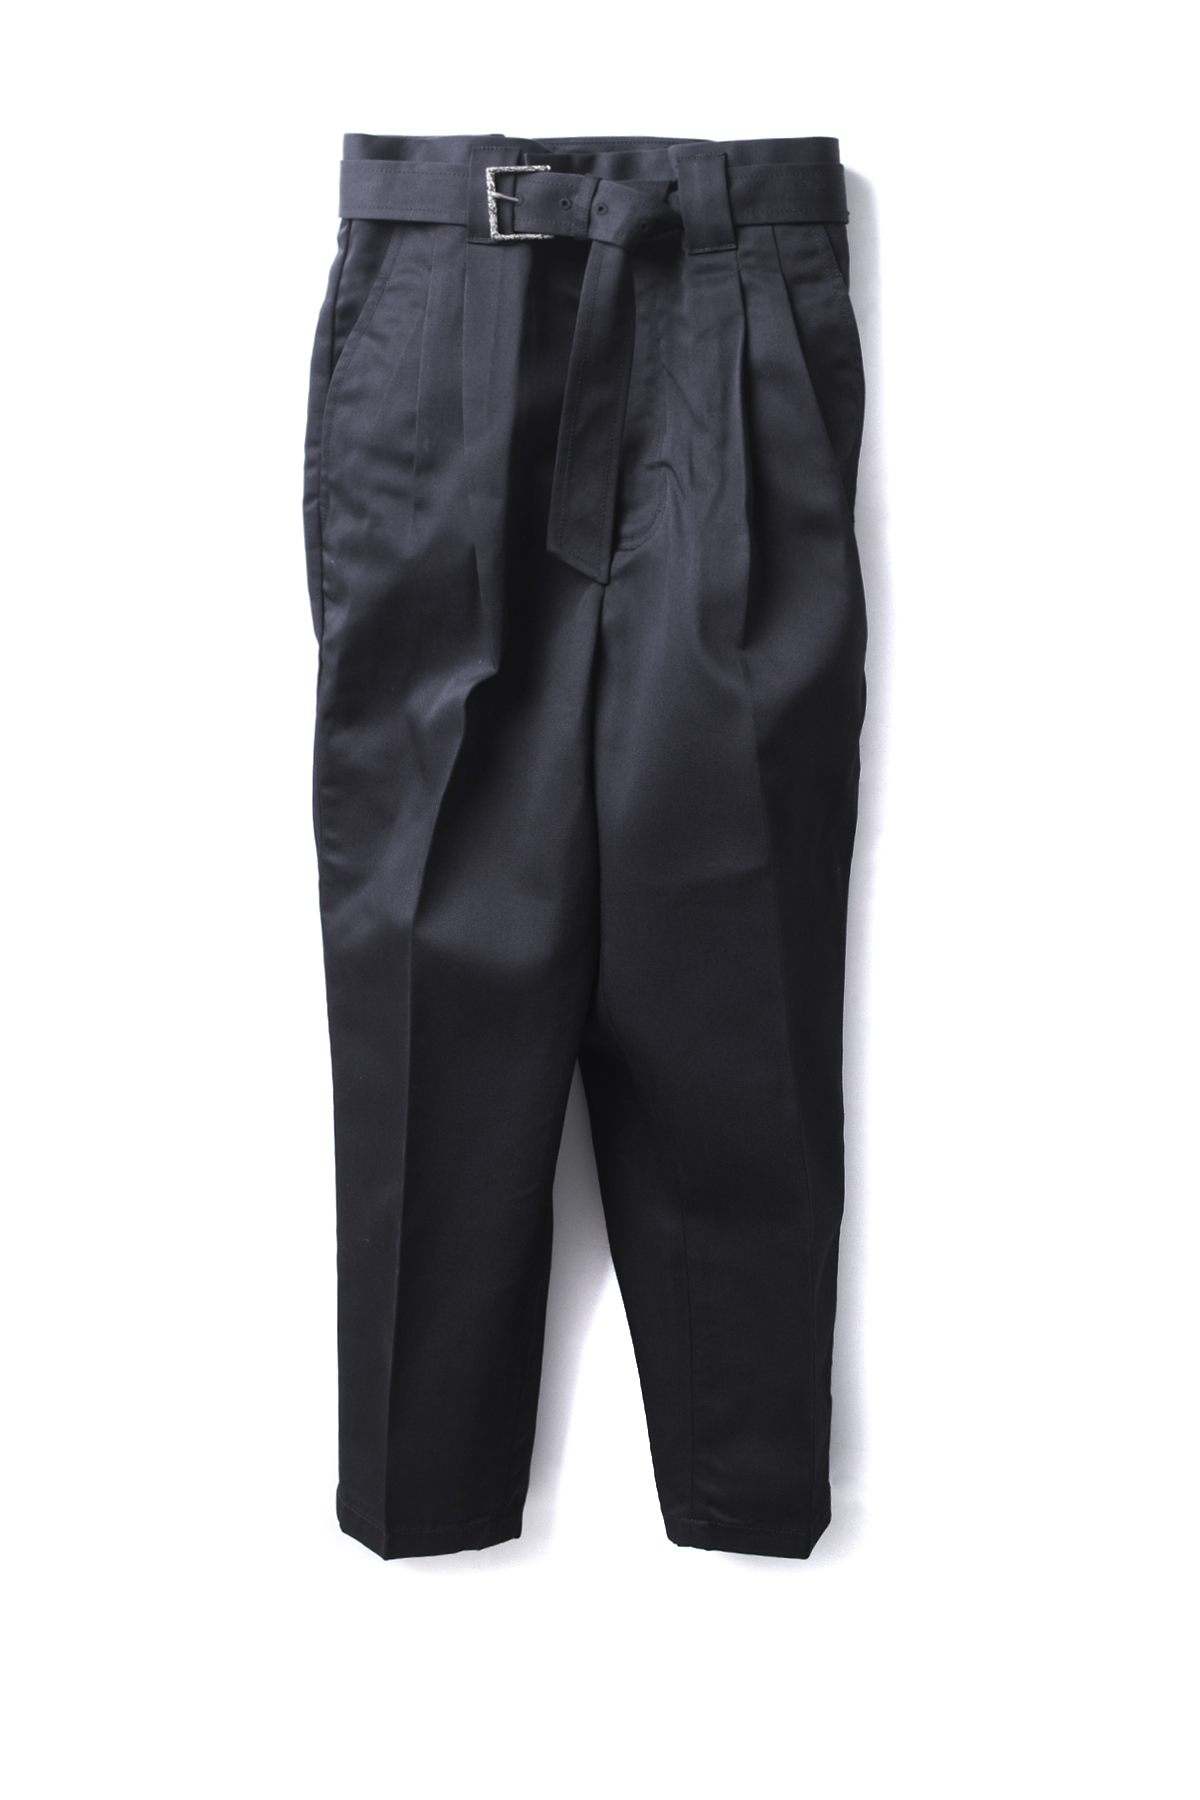 Christian Dada : DICKIES x Dada Pants (Black)